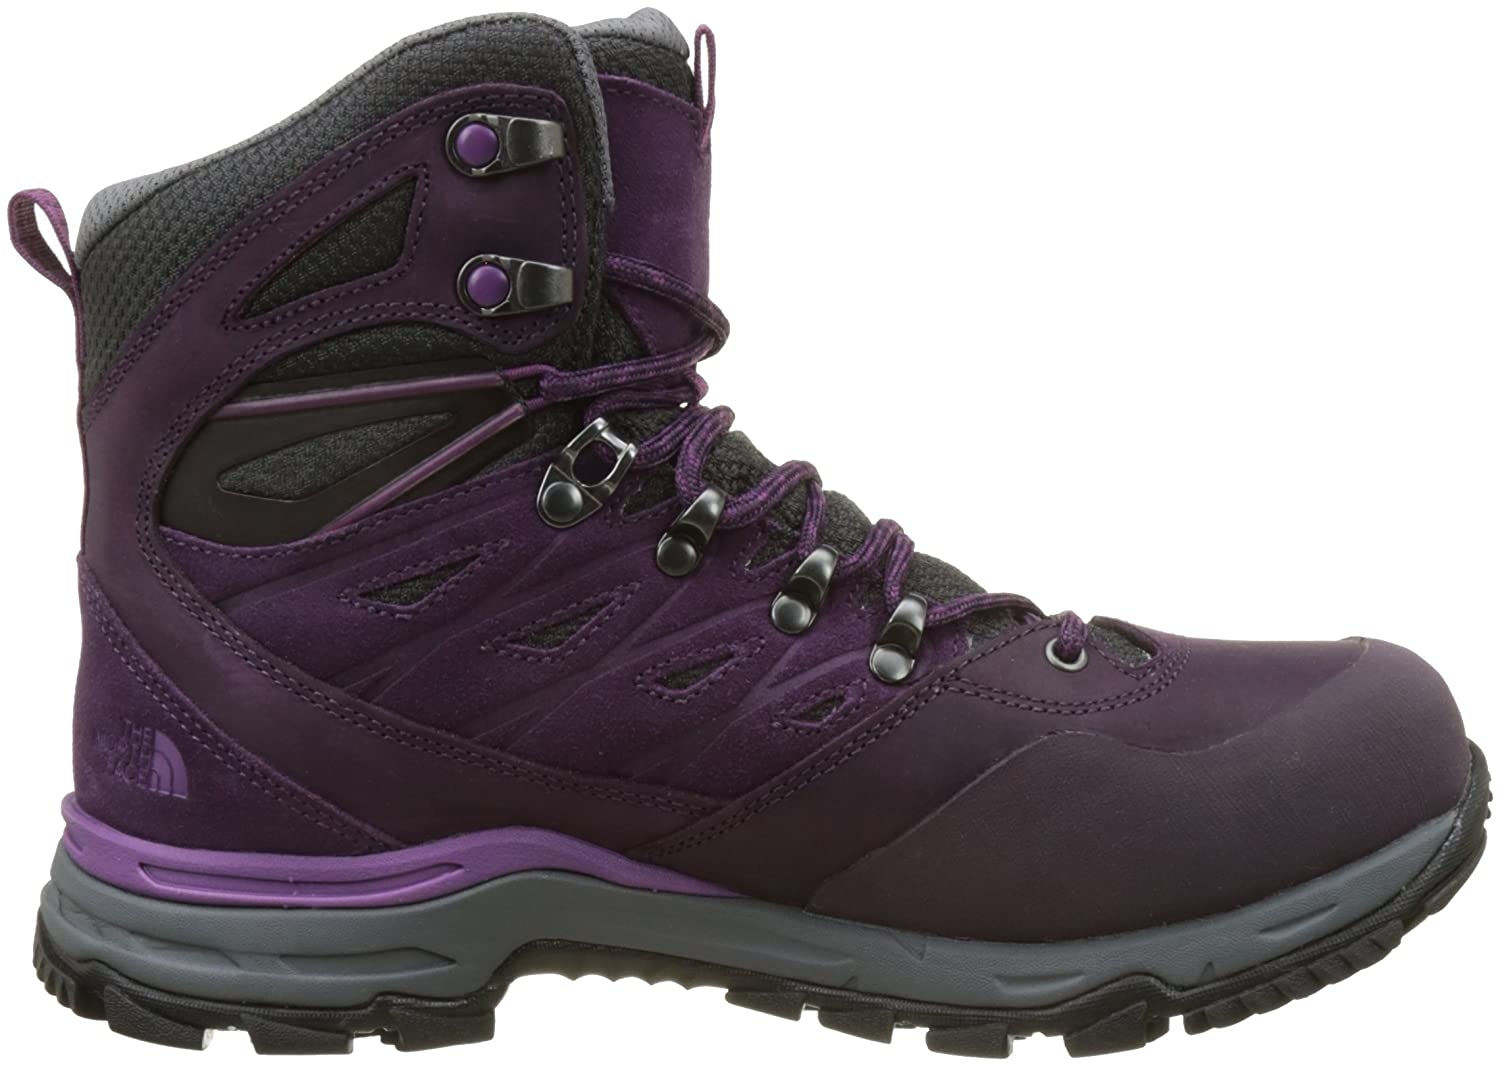 48e8b288e THE NORTH FACE Women's Hedgehog Trek Gore-tex High Rise Hiking Boots